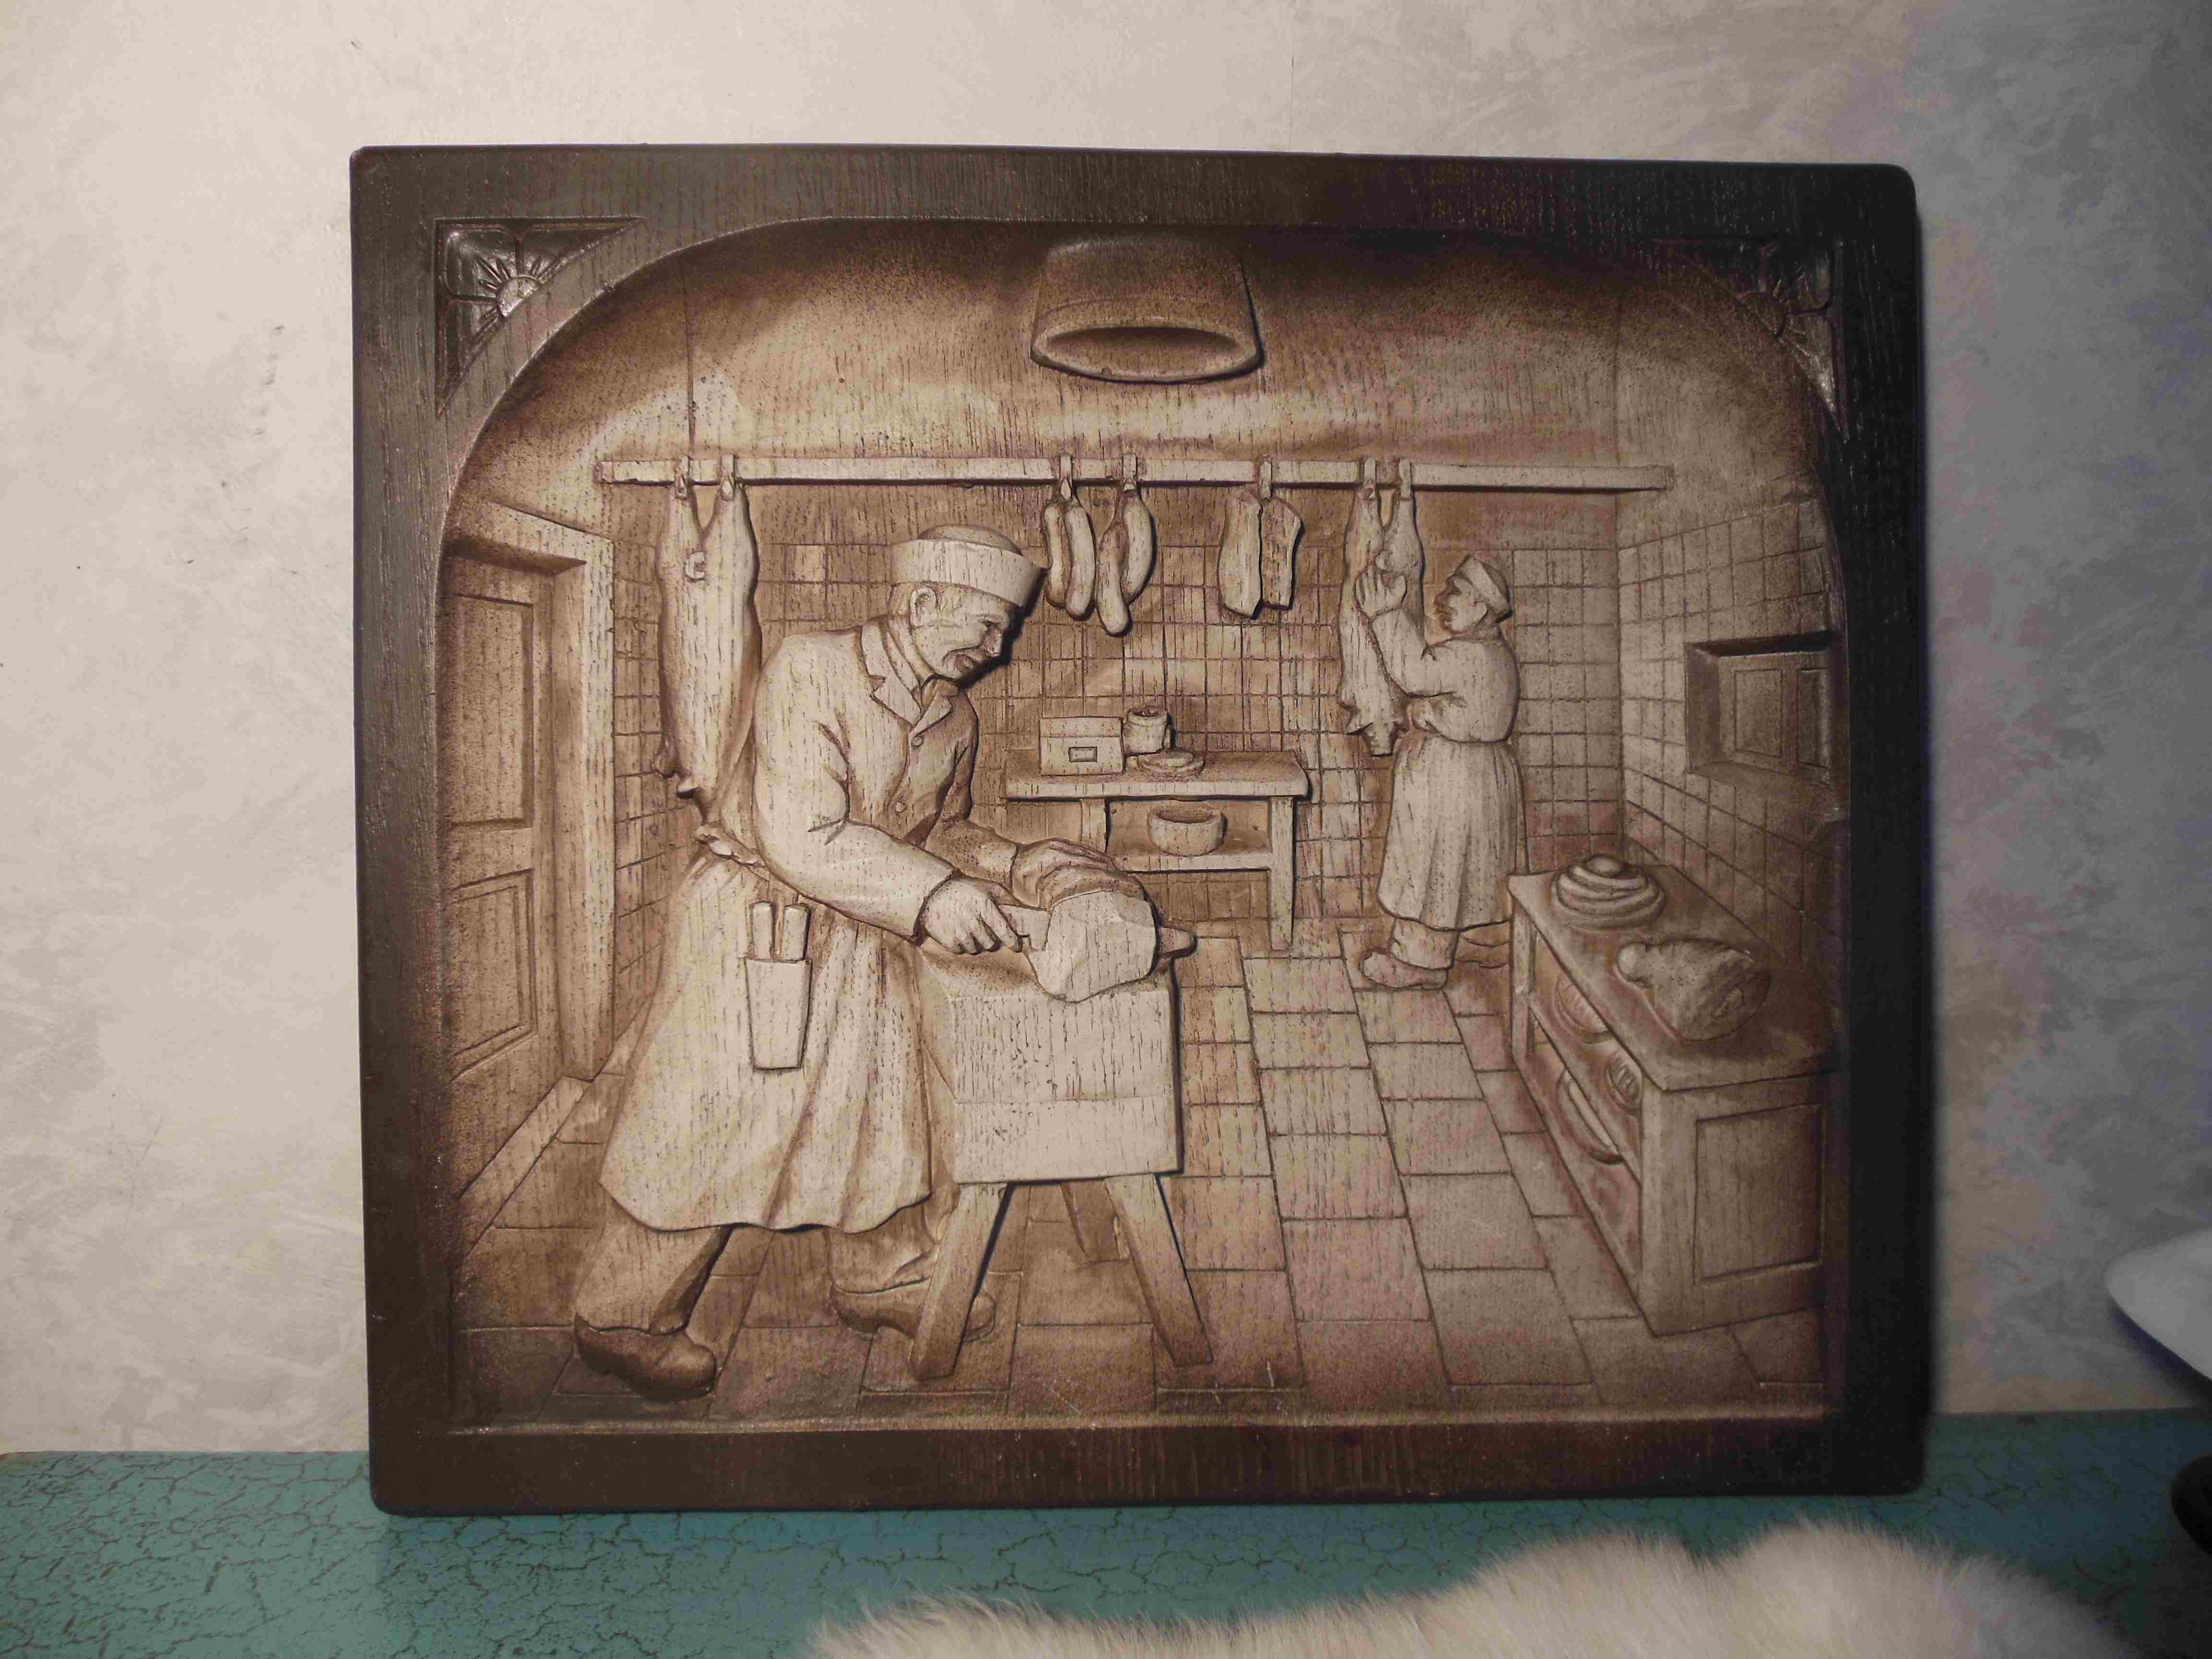 Beautiful stylized plate with 3D image of butcher shop by W. Sylvan.